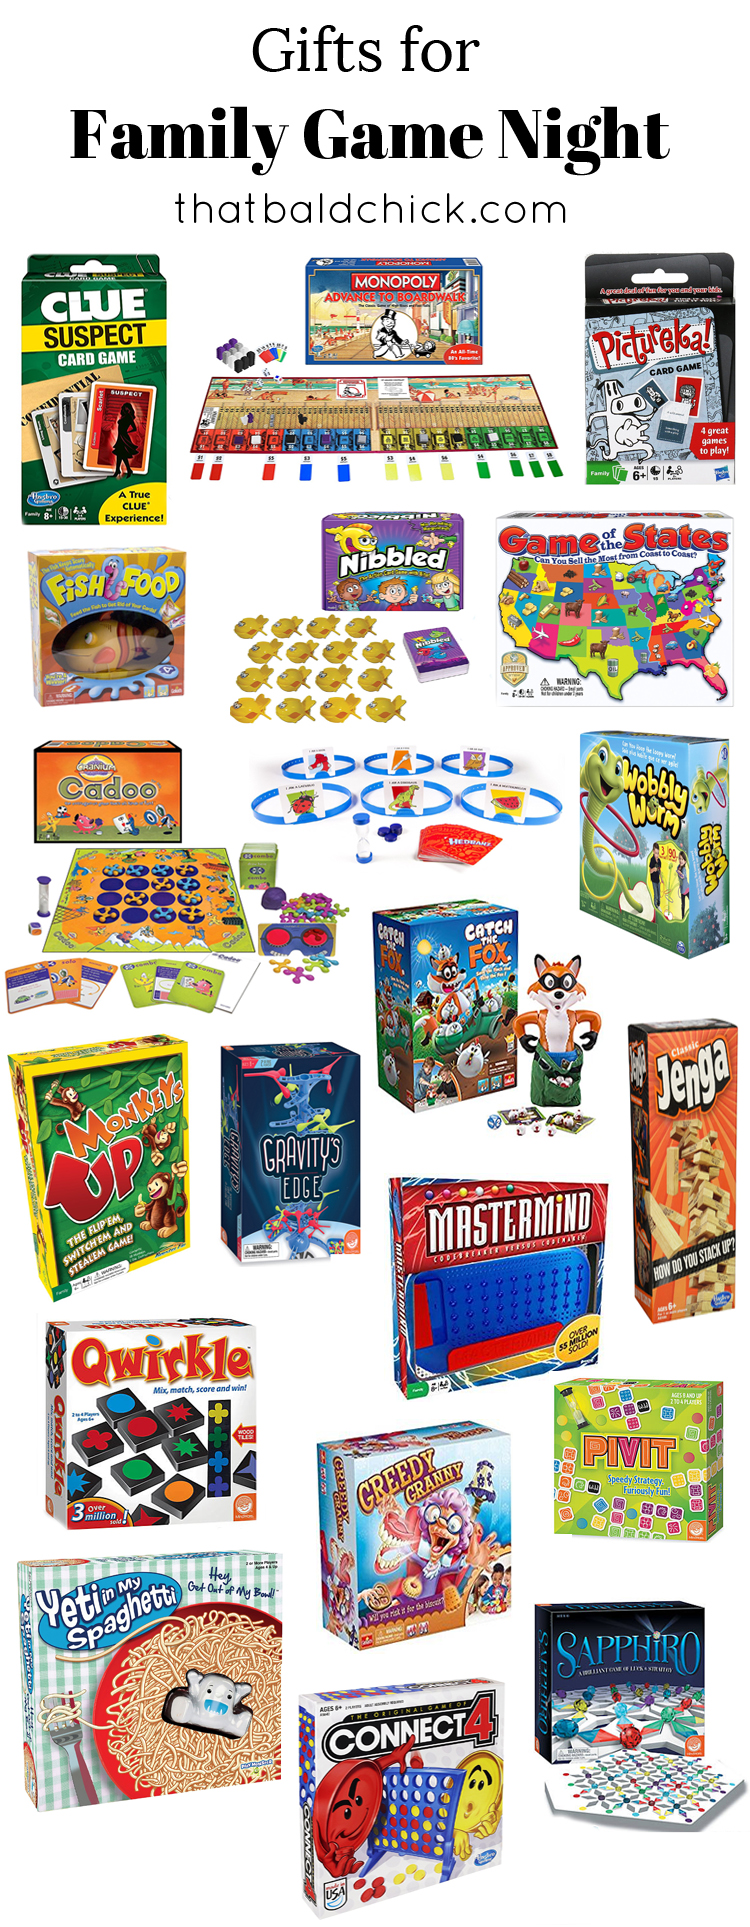 Gifts for Family Game Night